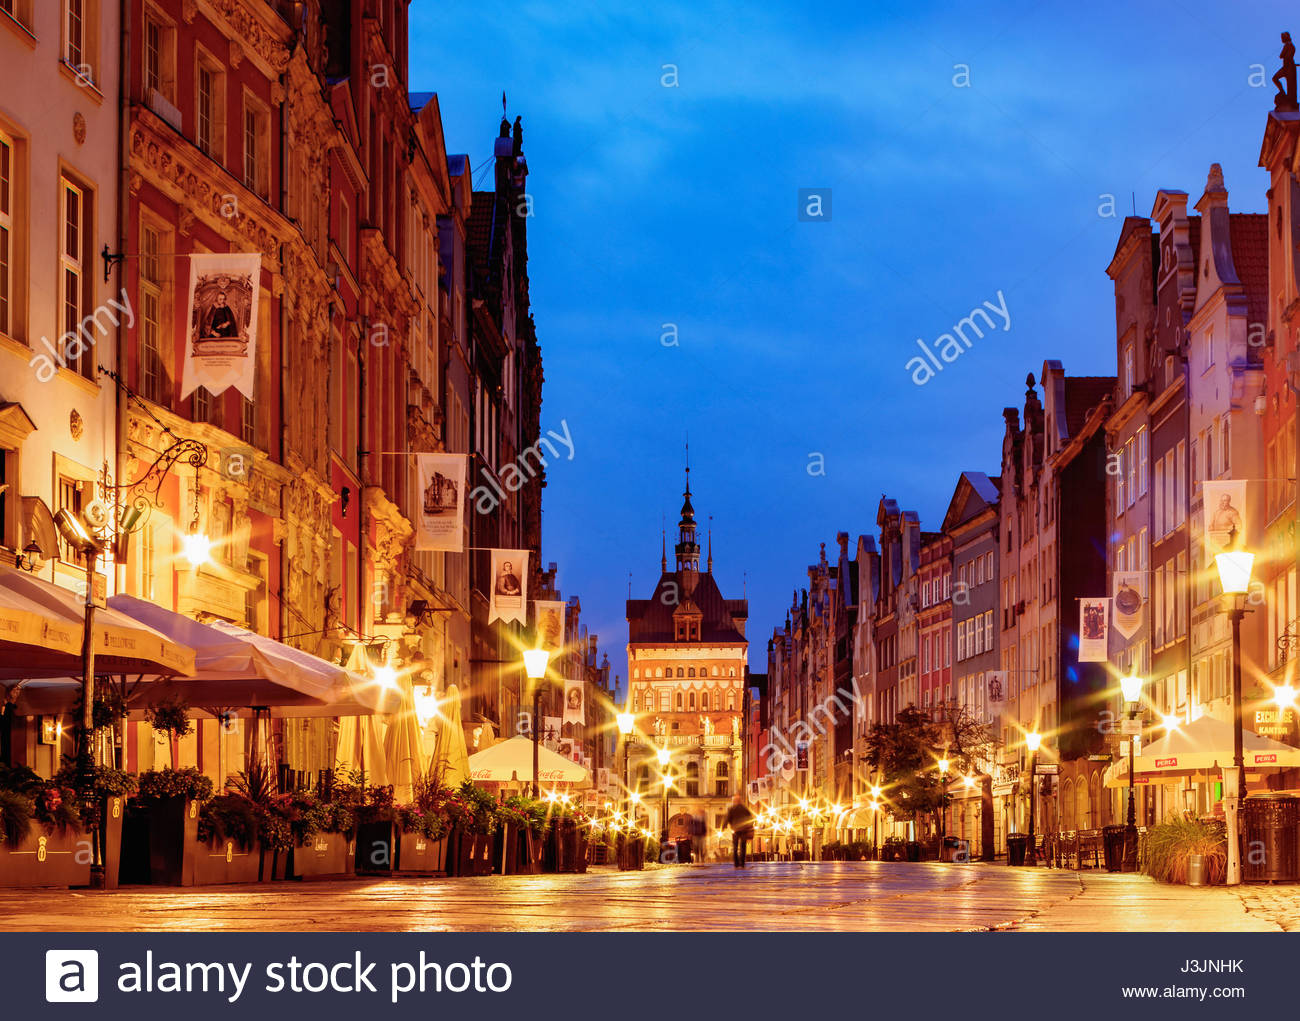 Brama Wyżynna The Baltic Coast and Pomerania, Poland, Pomeranian Voivodeship, Gdansk, Old Town, Long Street at ...